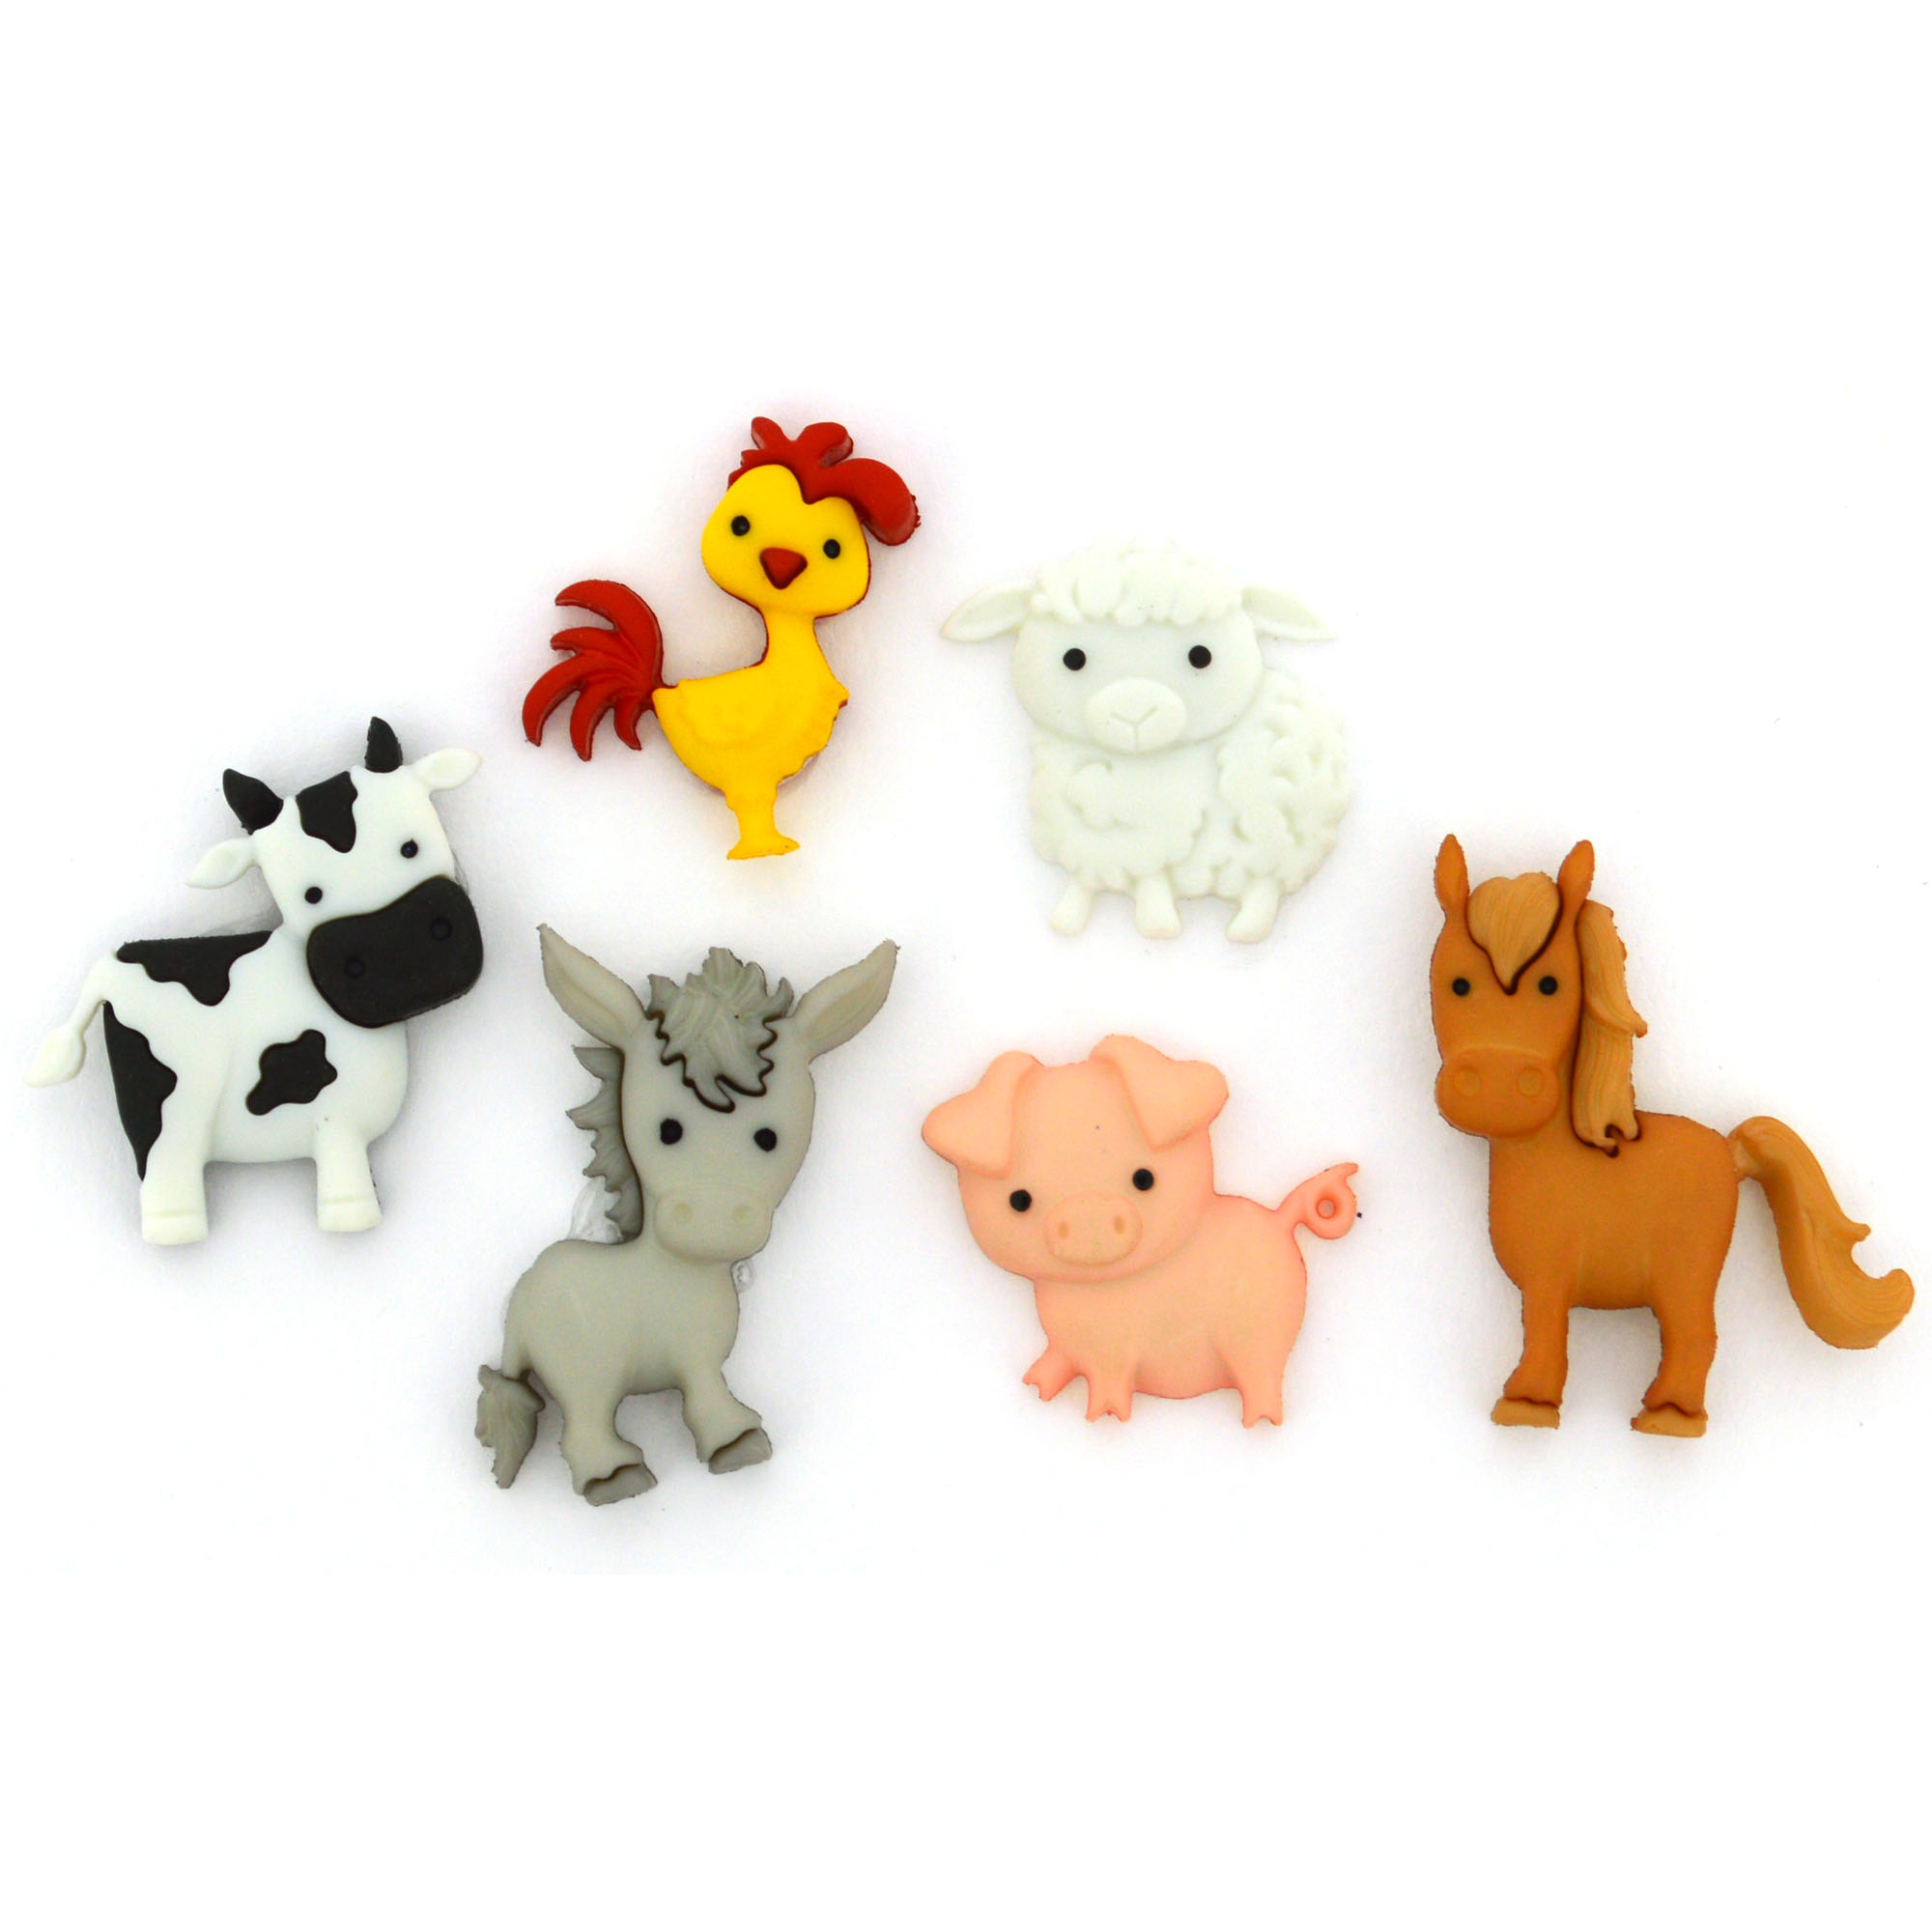 Horse Donkey Chicken Cow Pig Sheep Dress it Up Buttons In The Barnyard 10418